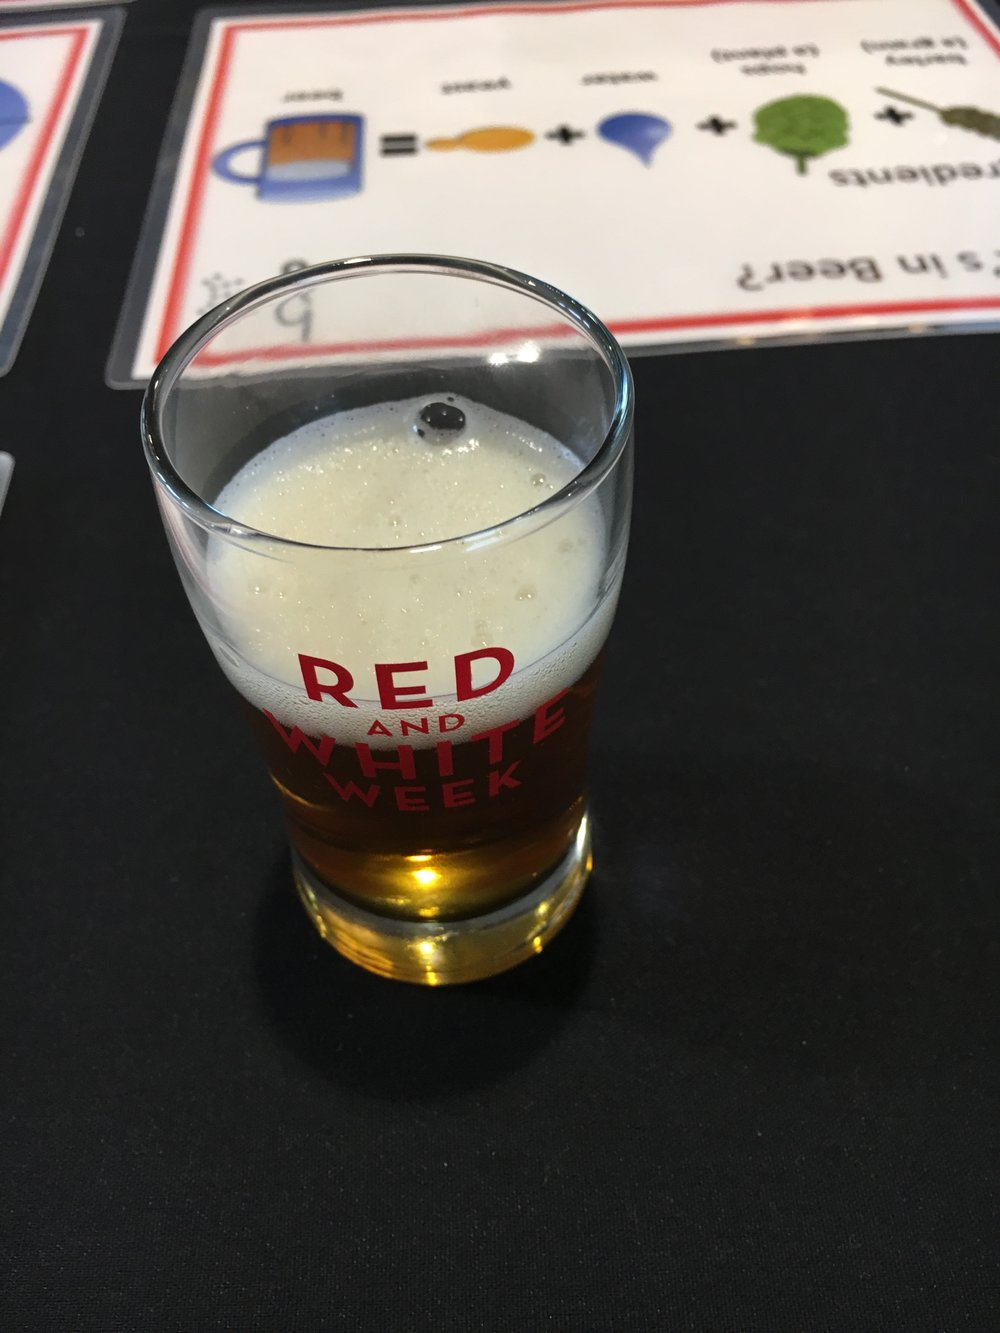 Bumble Bee Beer made with Lachancea's yeast featured at a recent North Carolina State University Event.